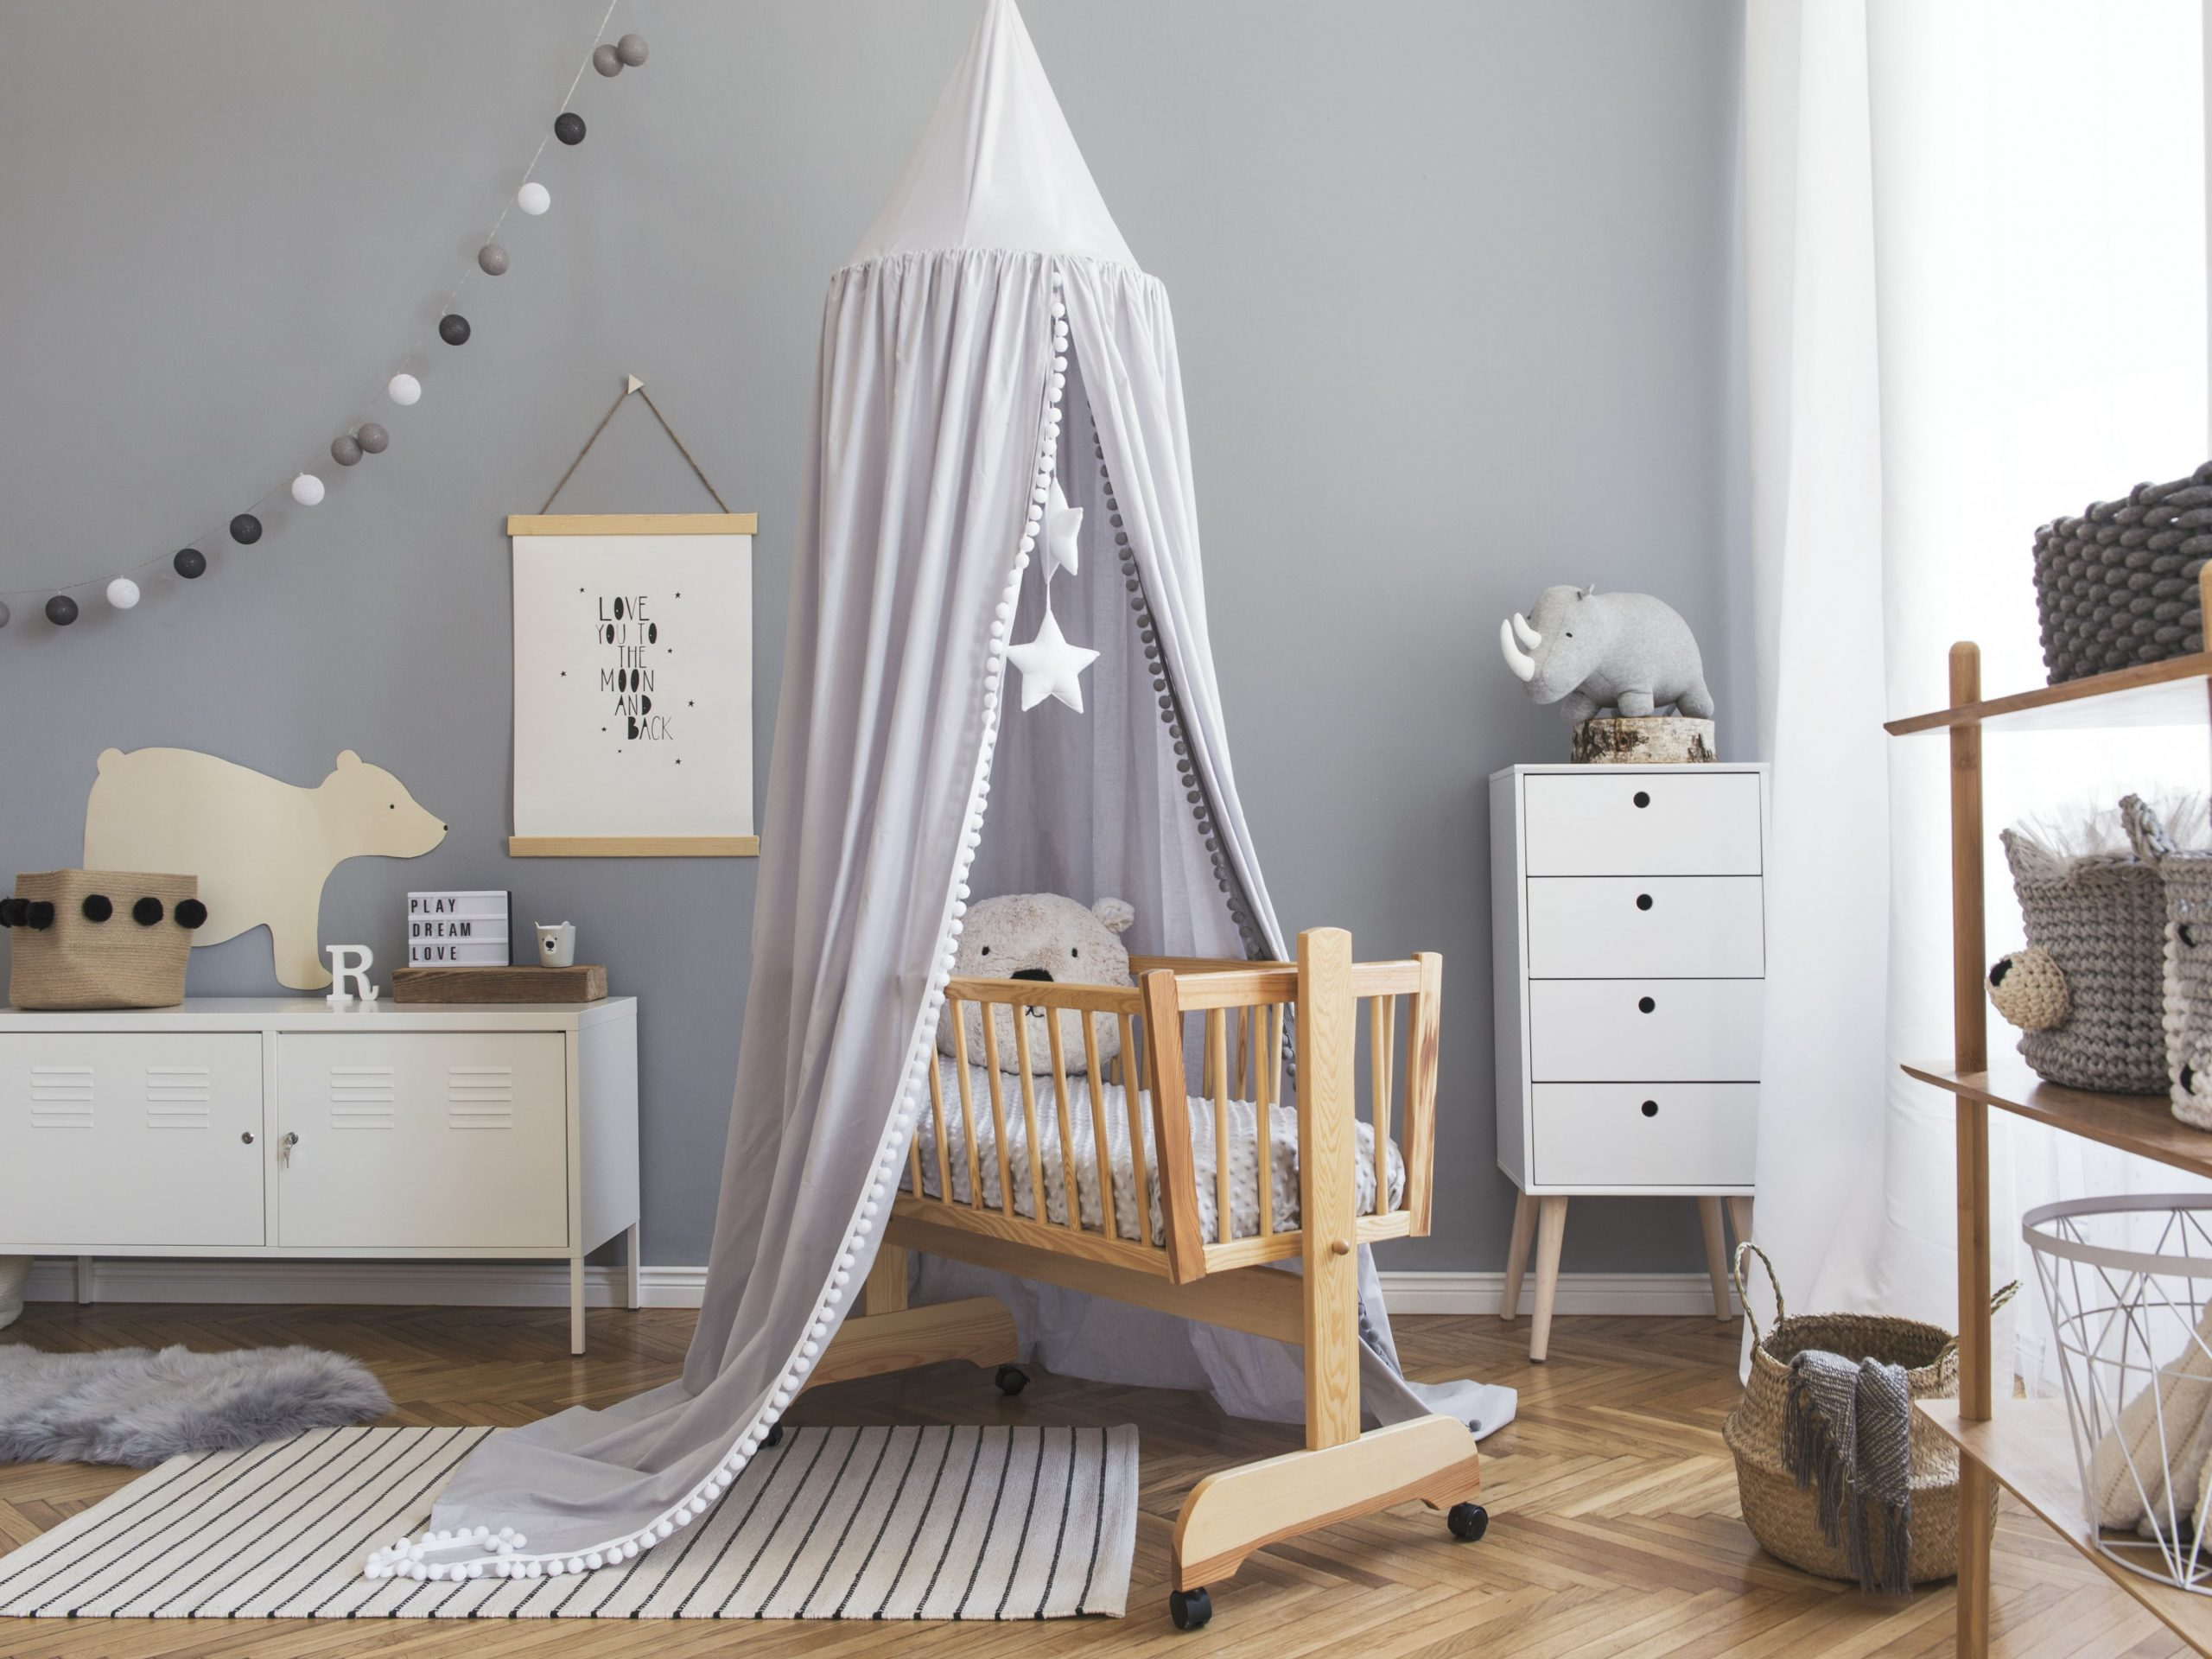 11 Best Paint Colors for a Boy Nursery - Baby Room Grey